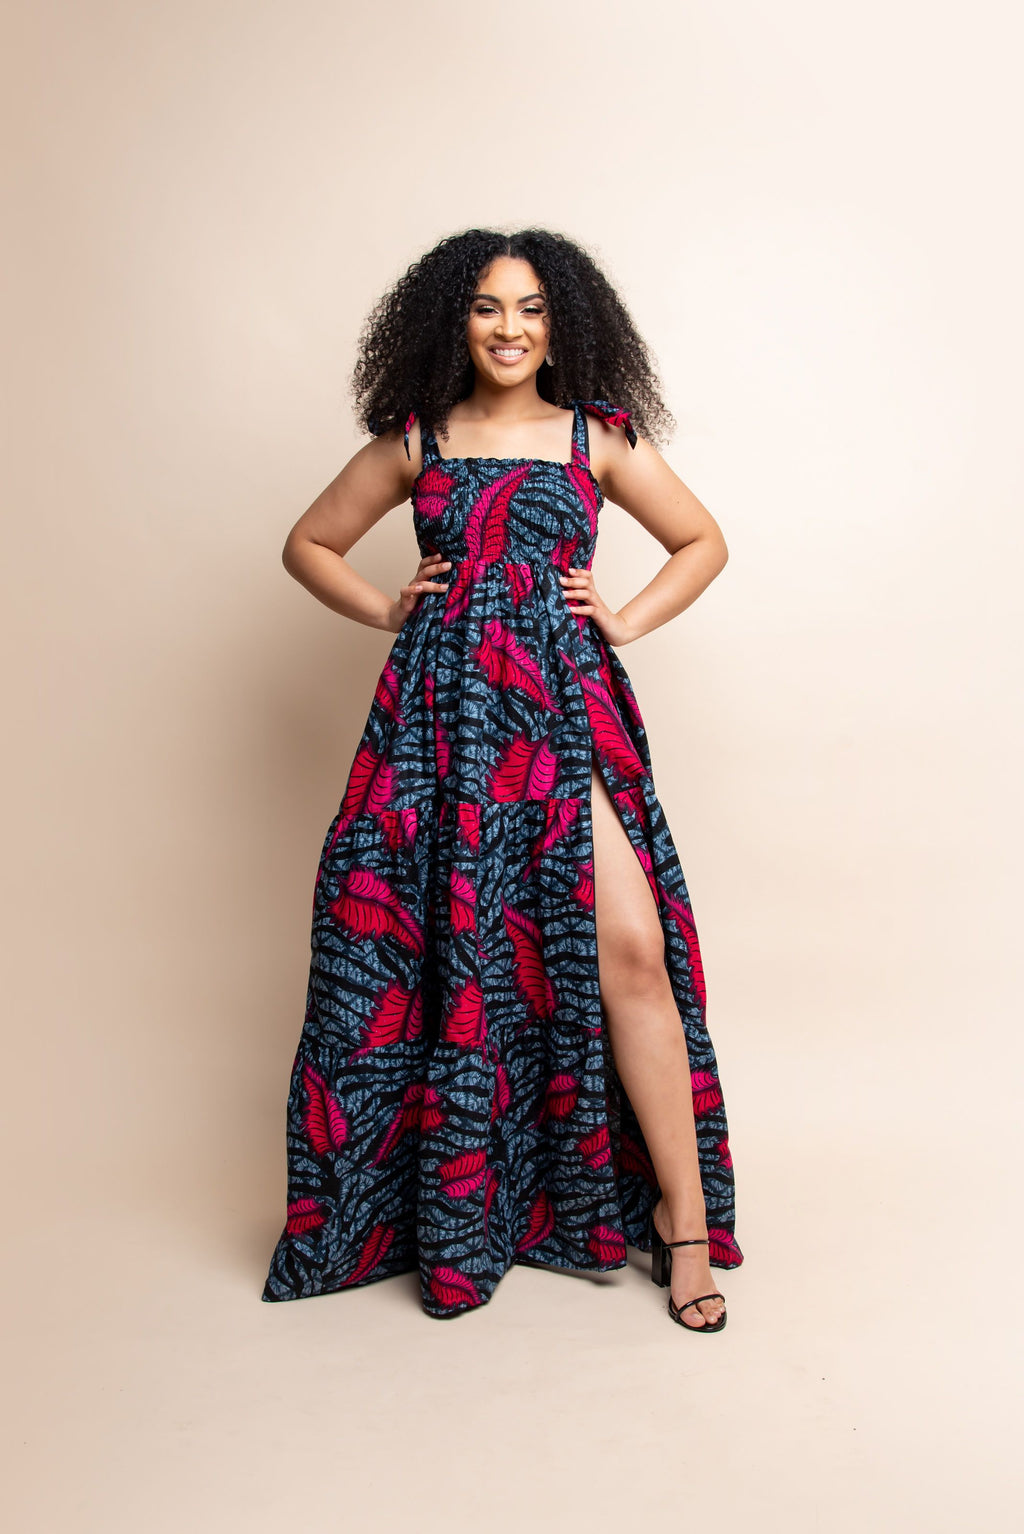 SIKI African print off smocked maxi dress (TIE)